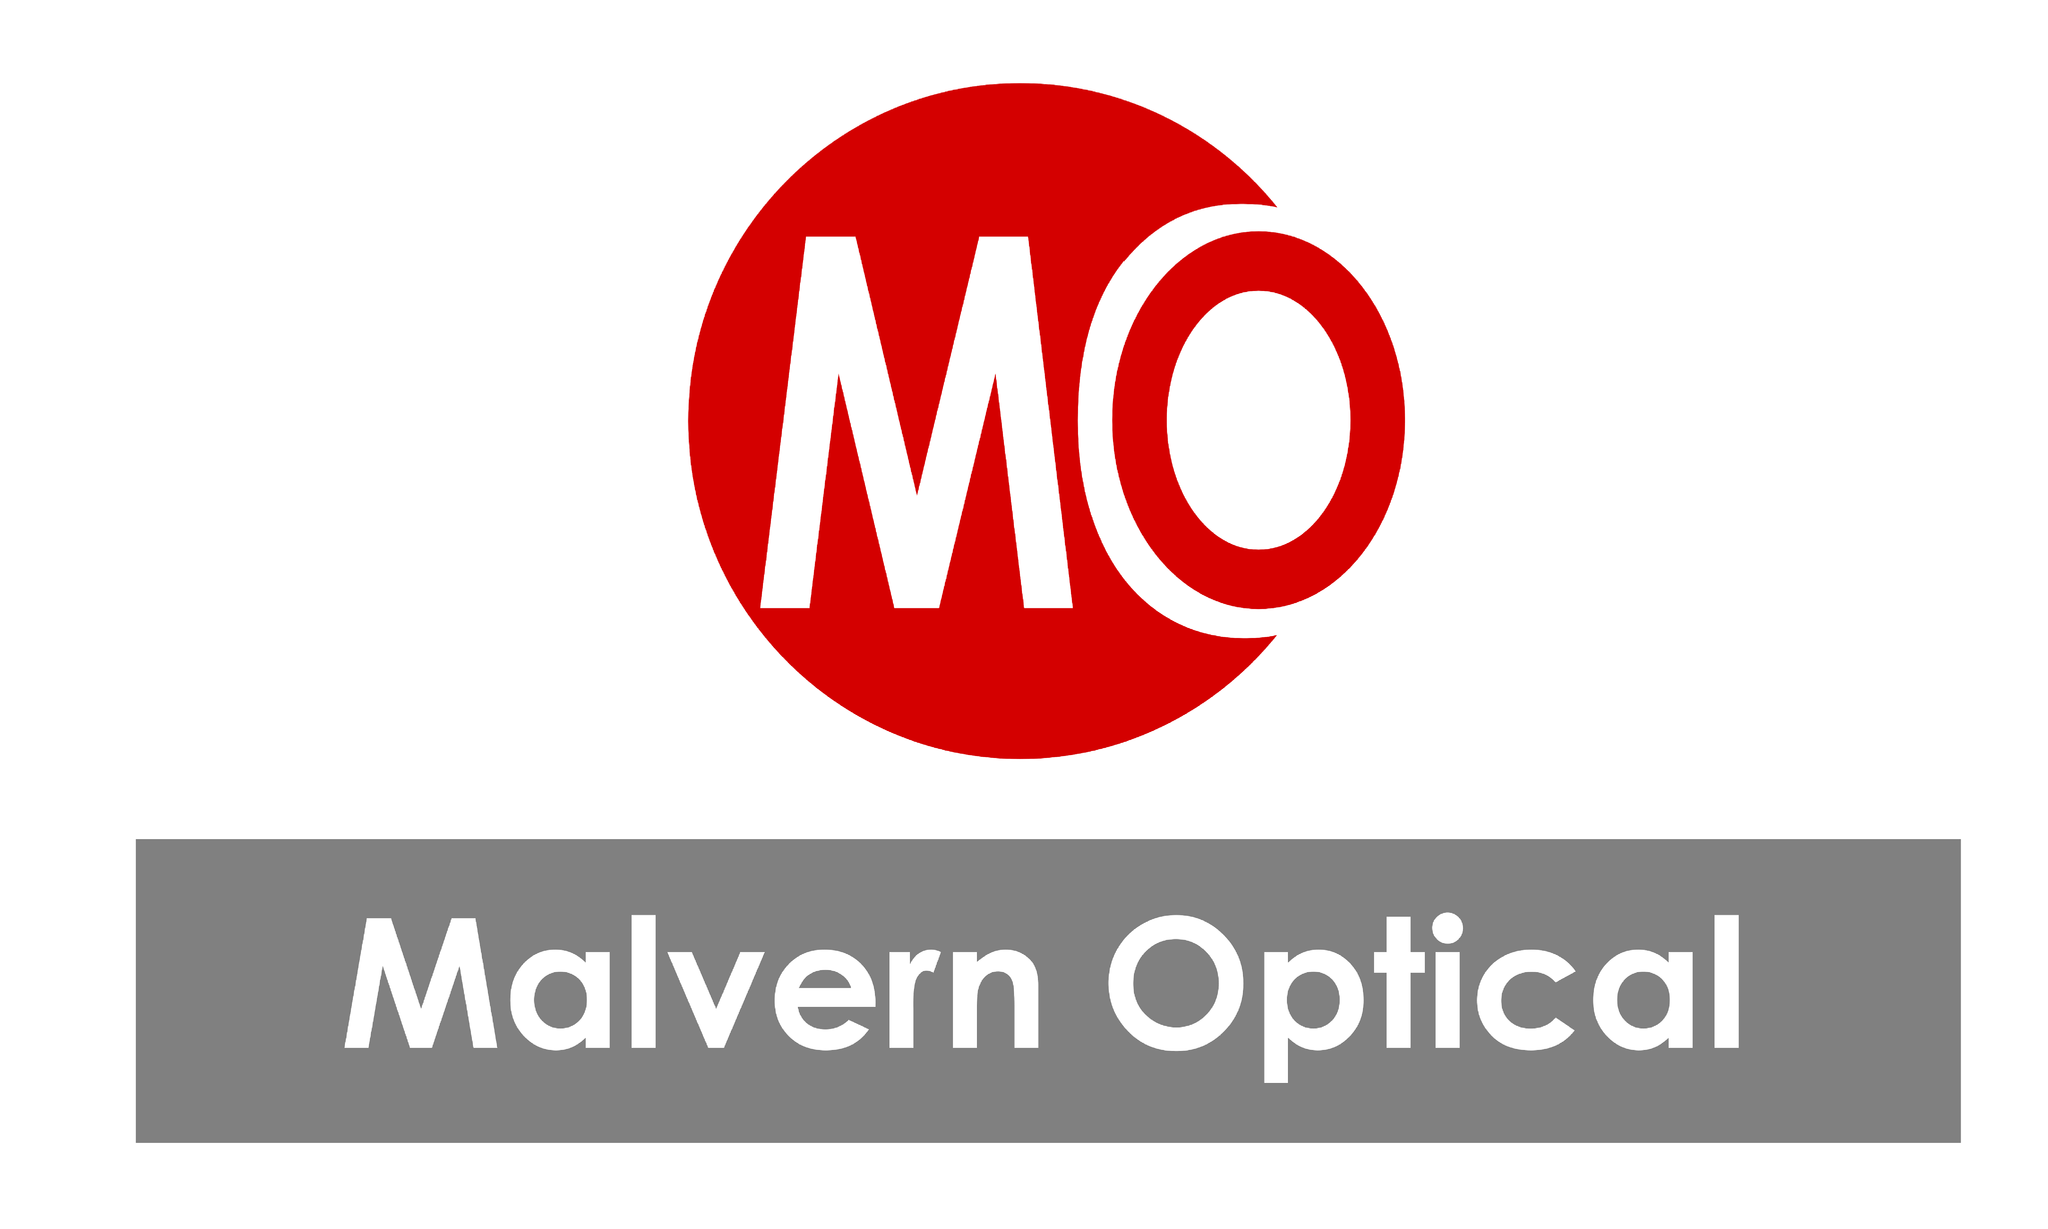 Malvern Optical